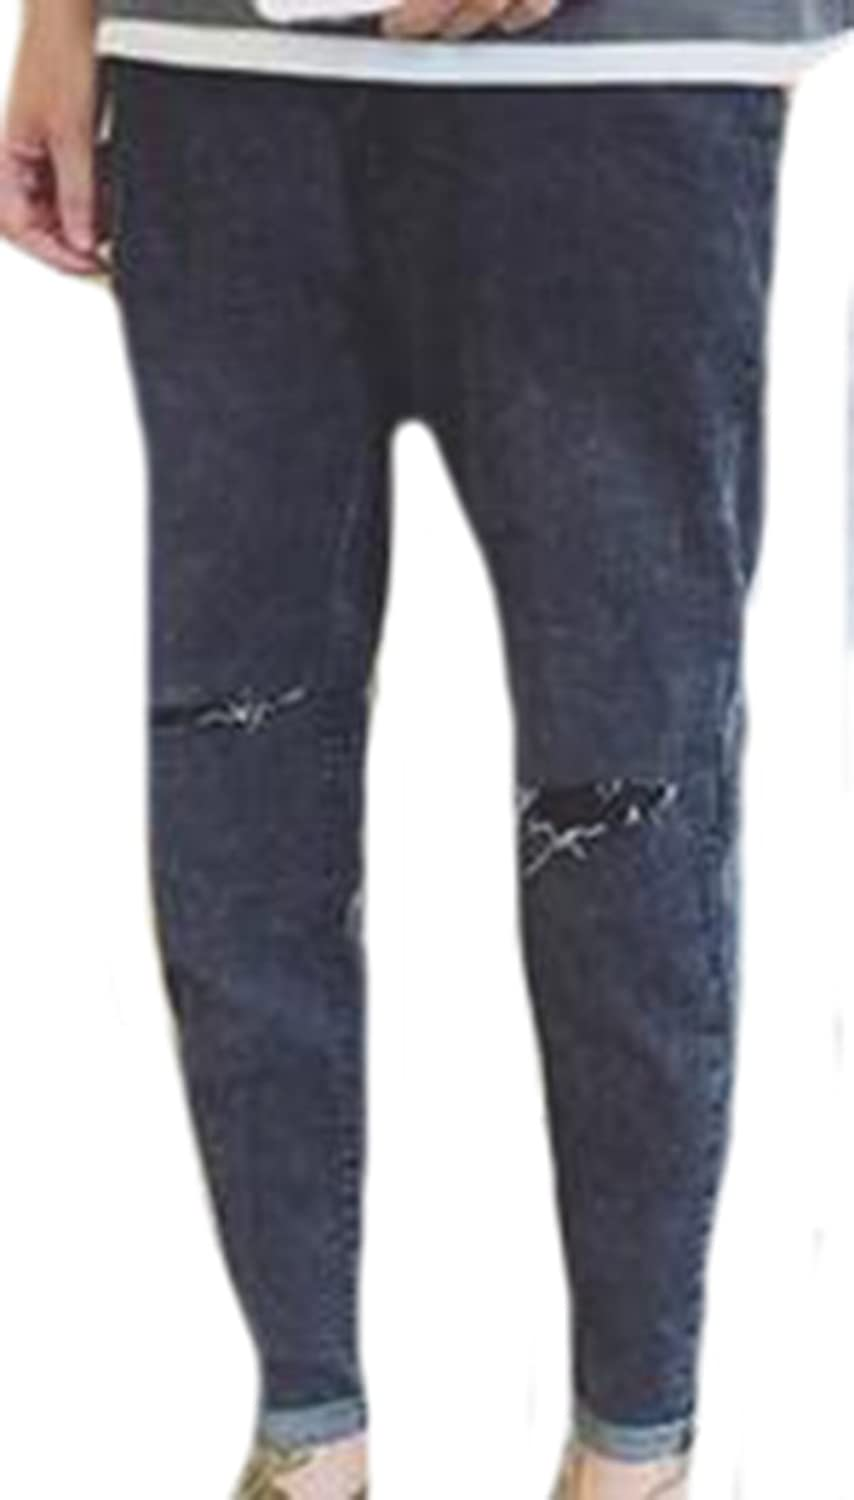 ARRIVE GUIDE Mens Casual Slim Mid Rise Ripped Faded Jeans Pants